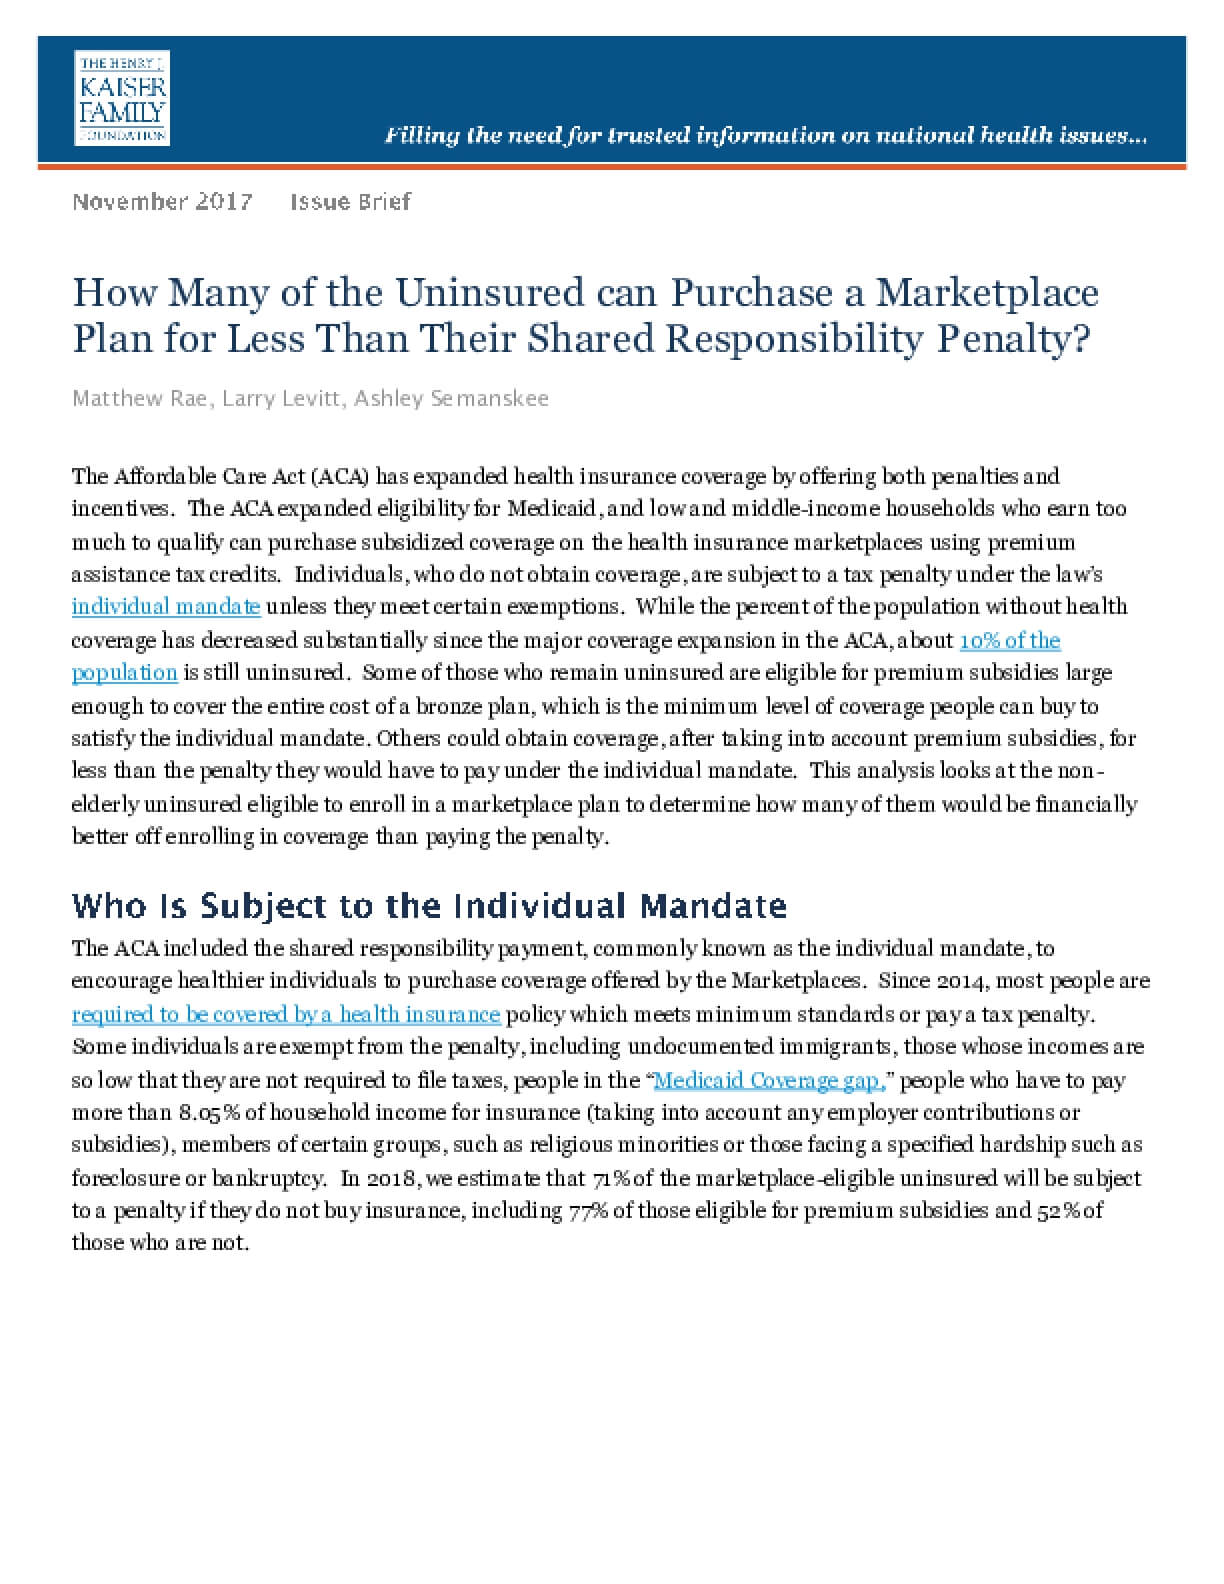 How Many of the Uninsured Can Purchase a Marketplace Plan for Less than Their Shared Responsibility Penalty?